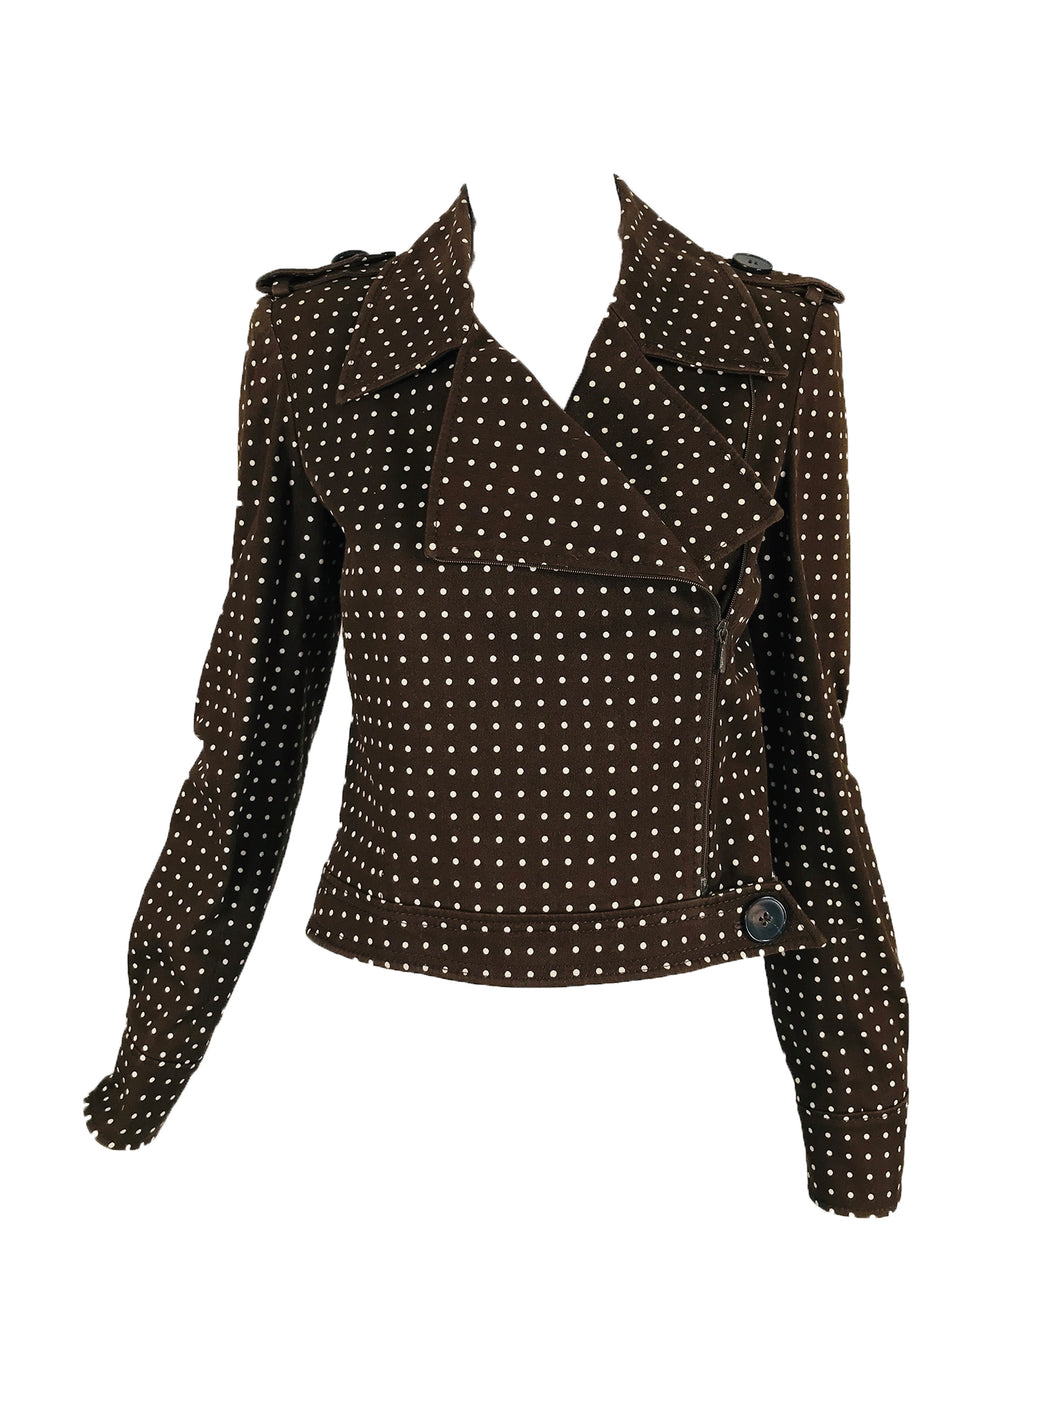 Valentino Brown and White Dot Cropped Motorcycle Jacket